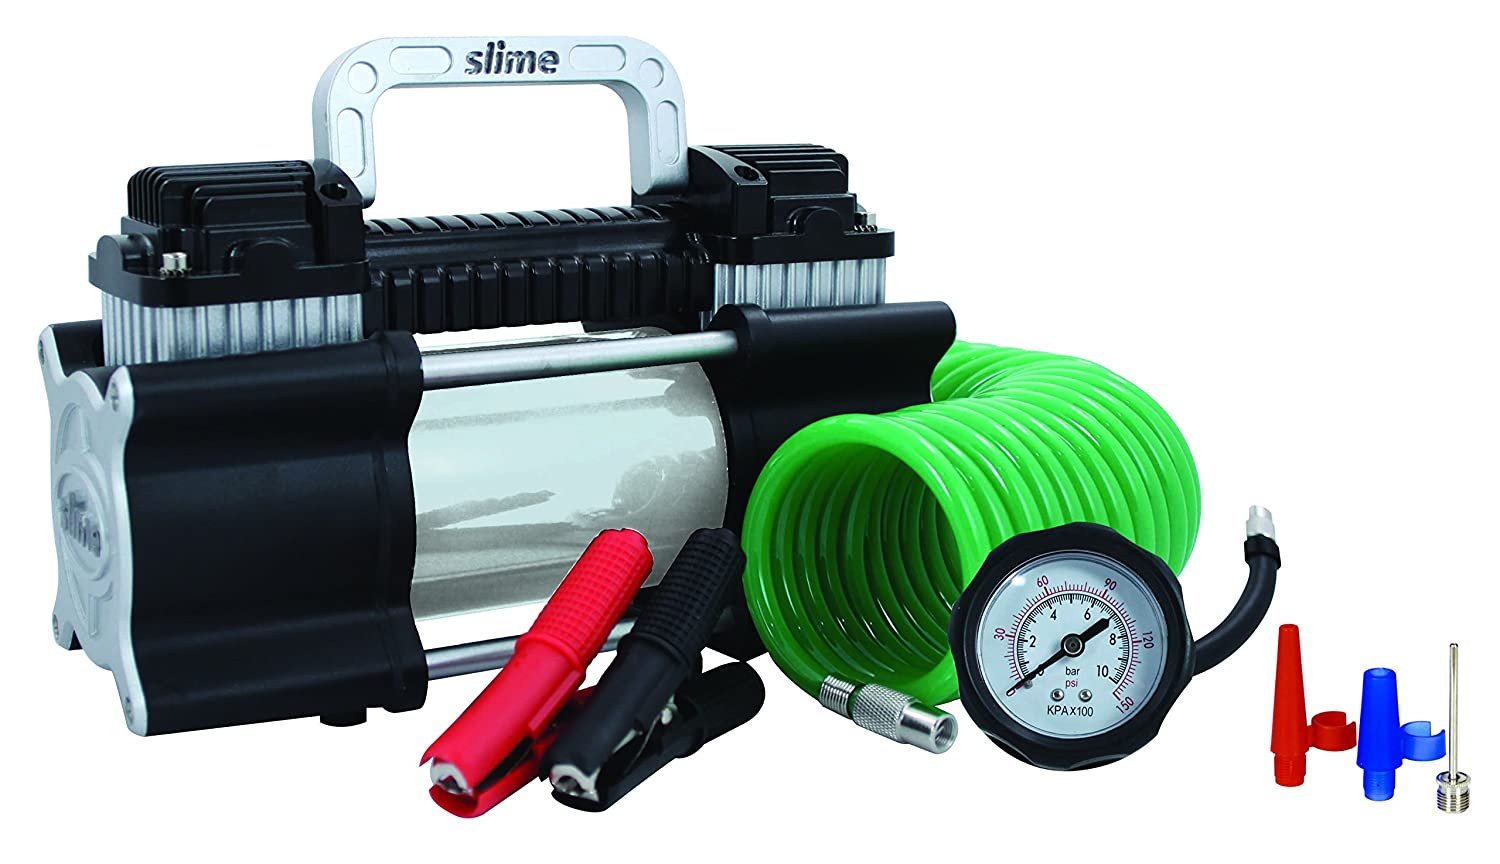 Slime 40026 2X Heavy Duty Direct Drive Tire Inflator: Amazon.es: Coche y moto